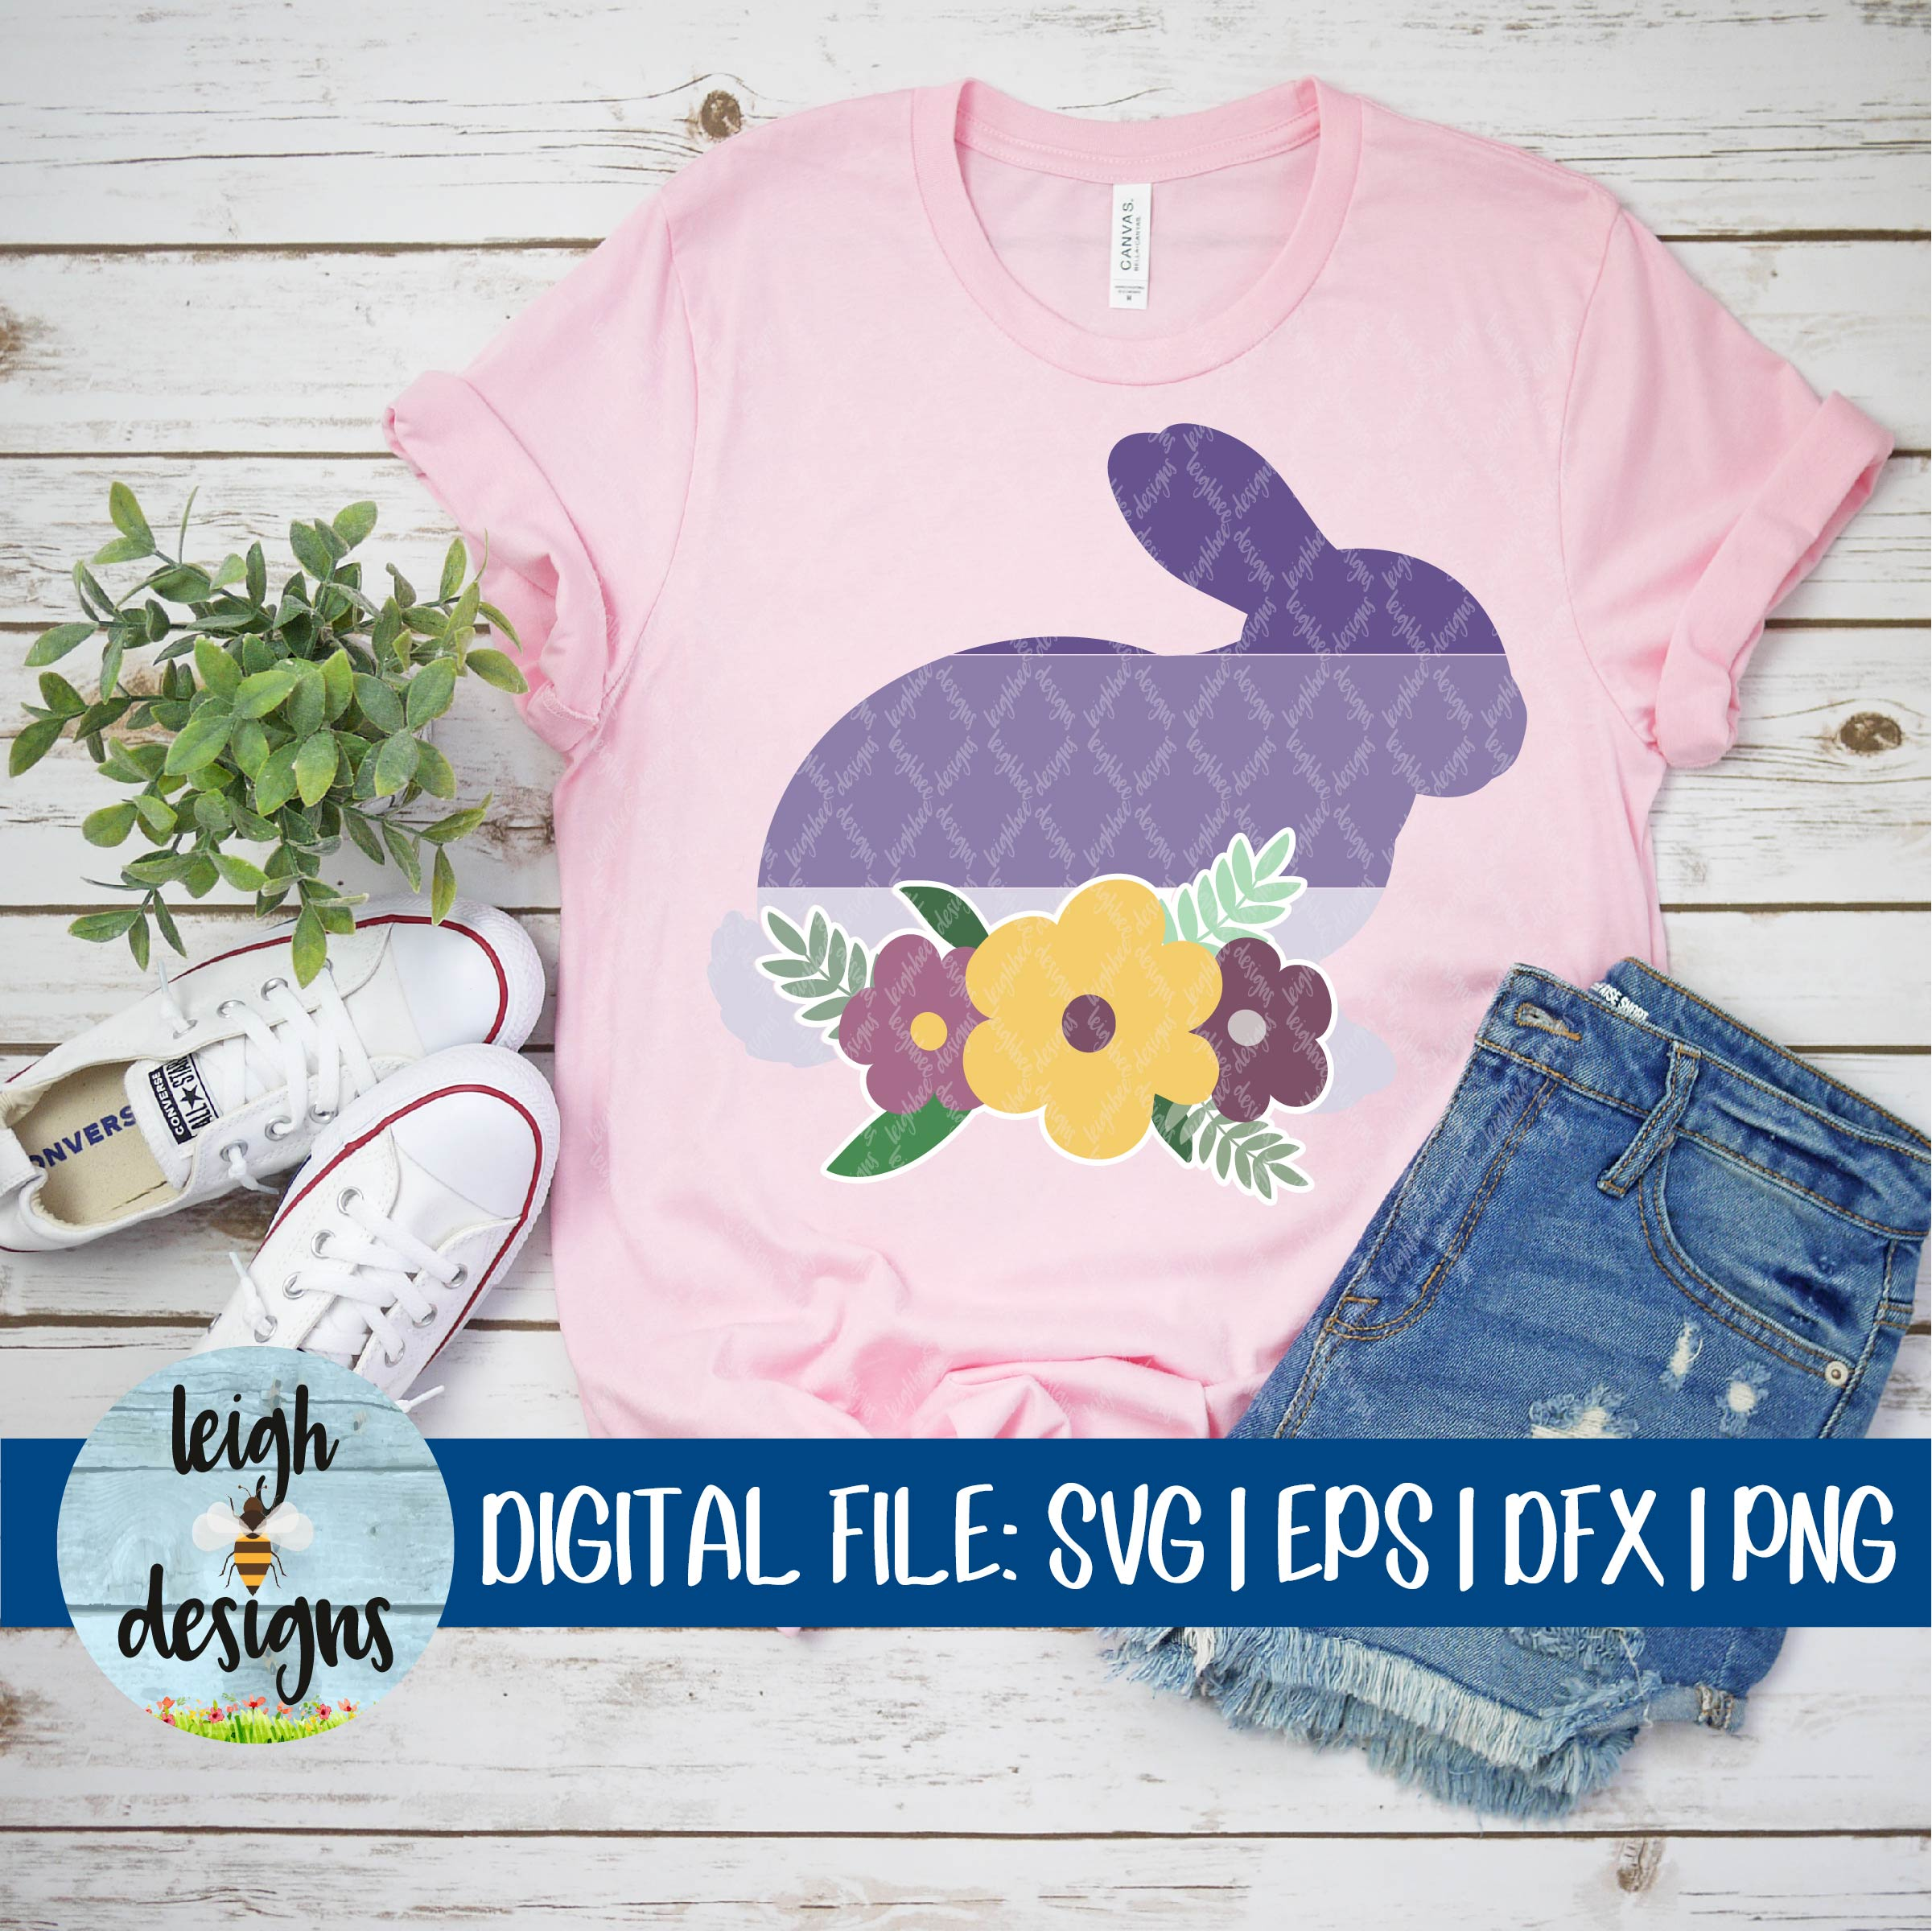 Ombre Bunny with Flower Swag SVG EPS DFX PNG Cut File example image 4